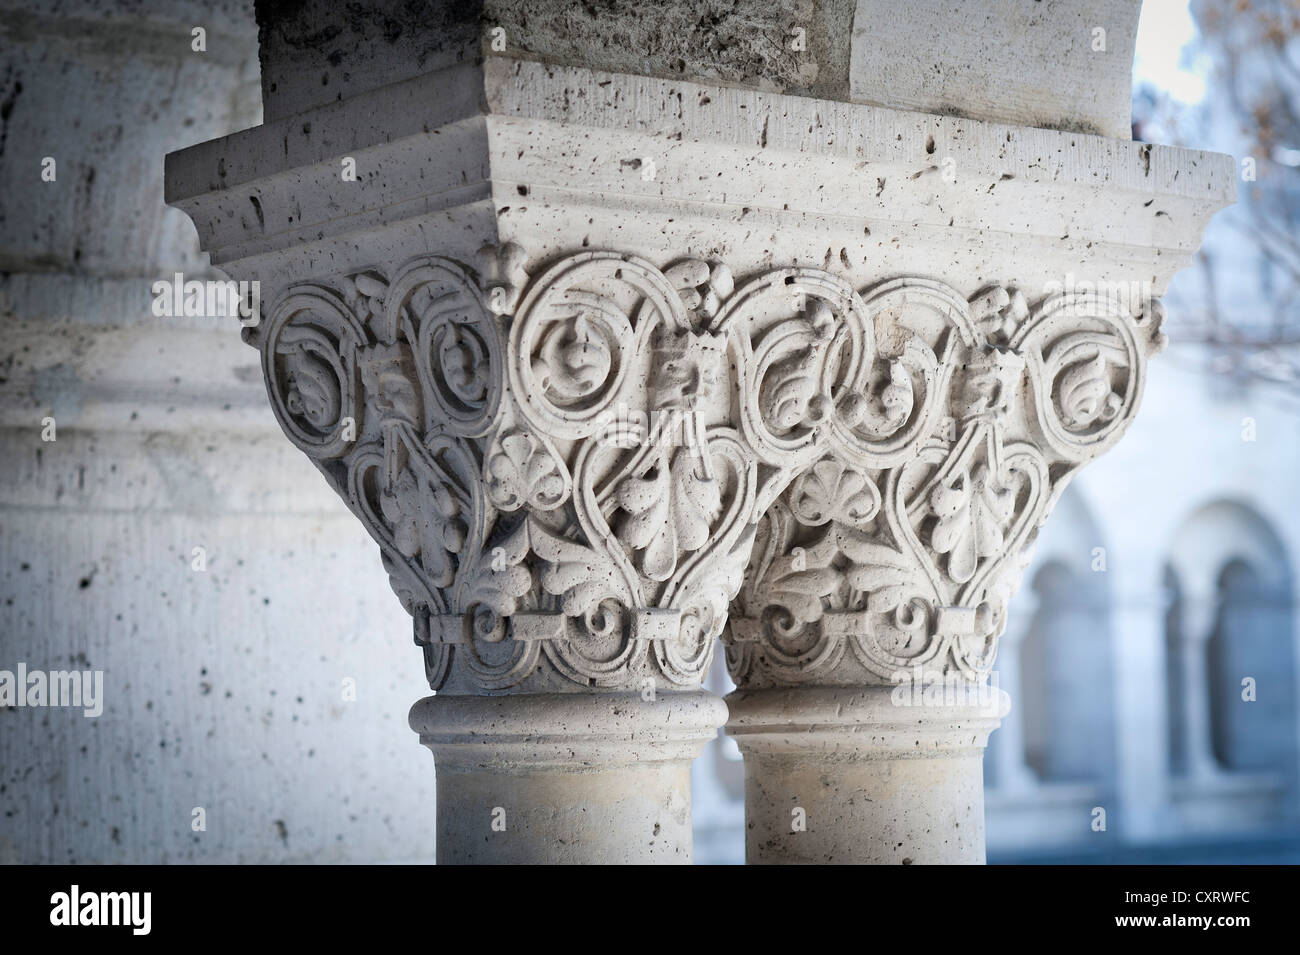 romanesque pillar capital stock photos romanesque pillar capital